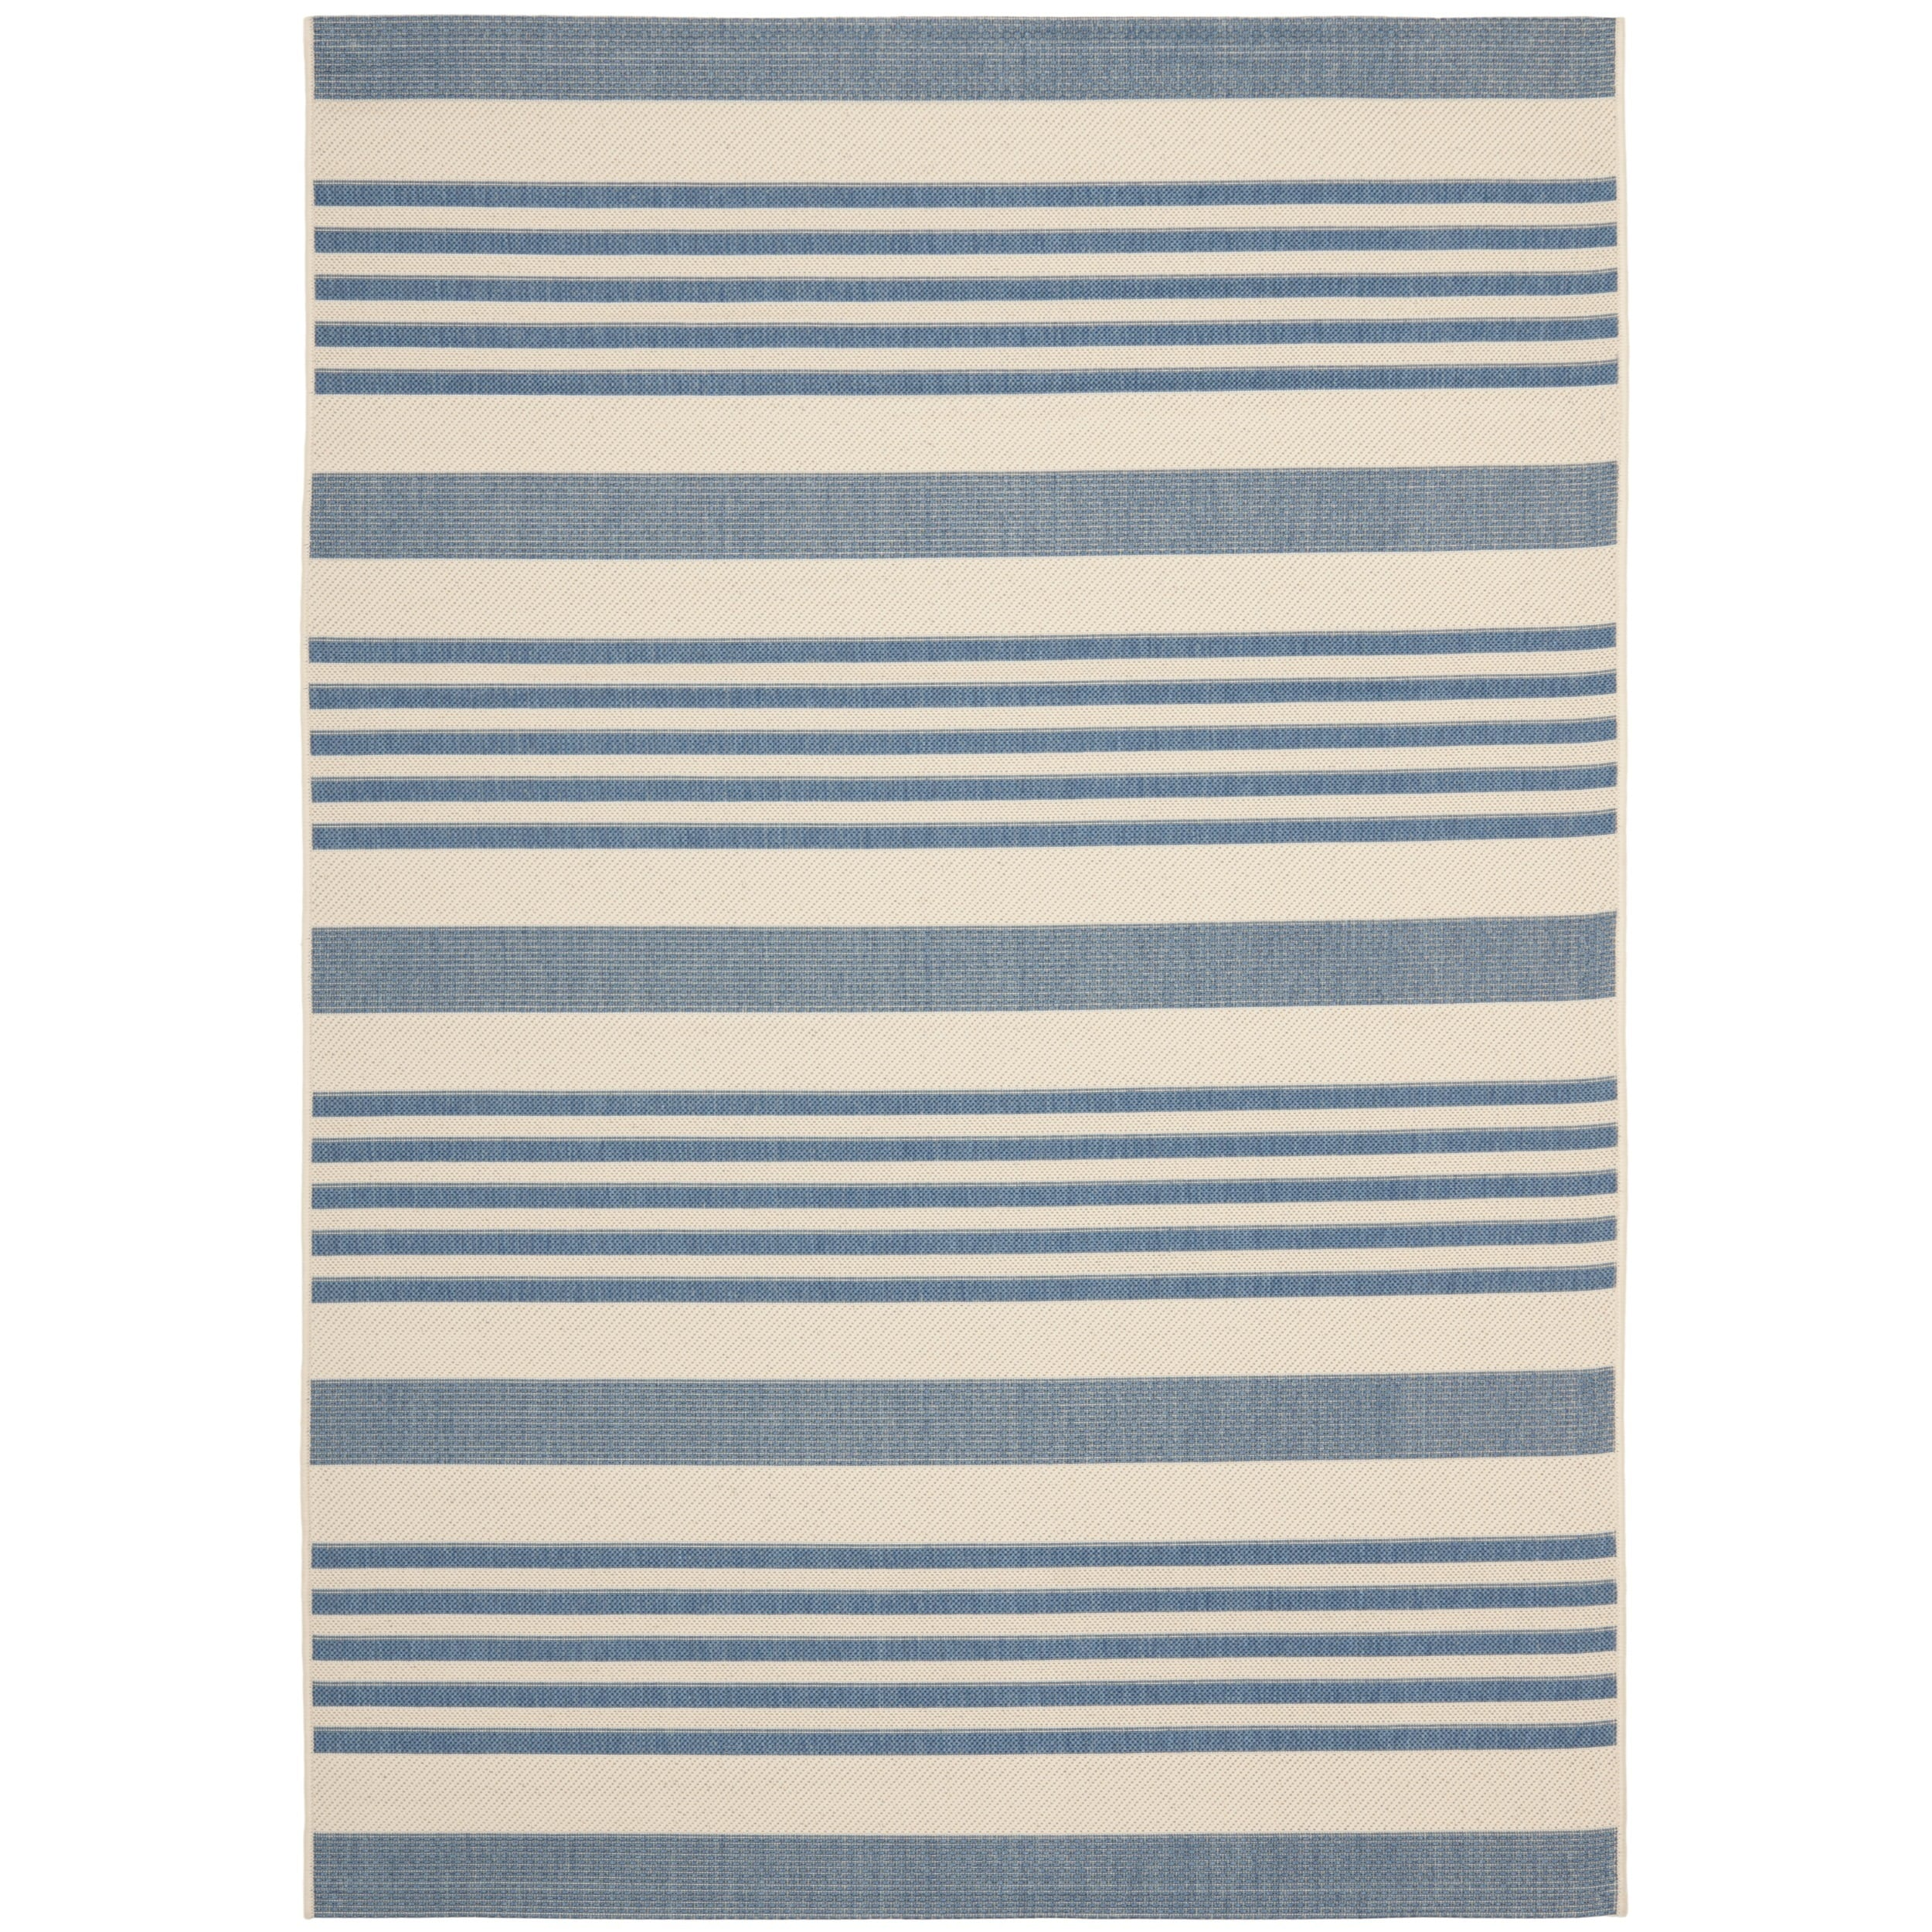 Top Product Reviews for Safavieh Courtyard Stripe Beige/ Blue Indoor ...